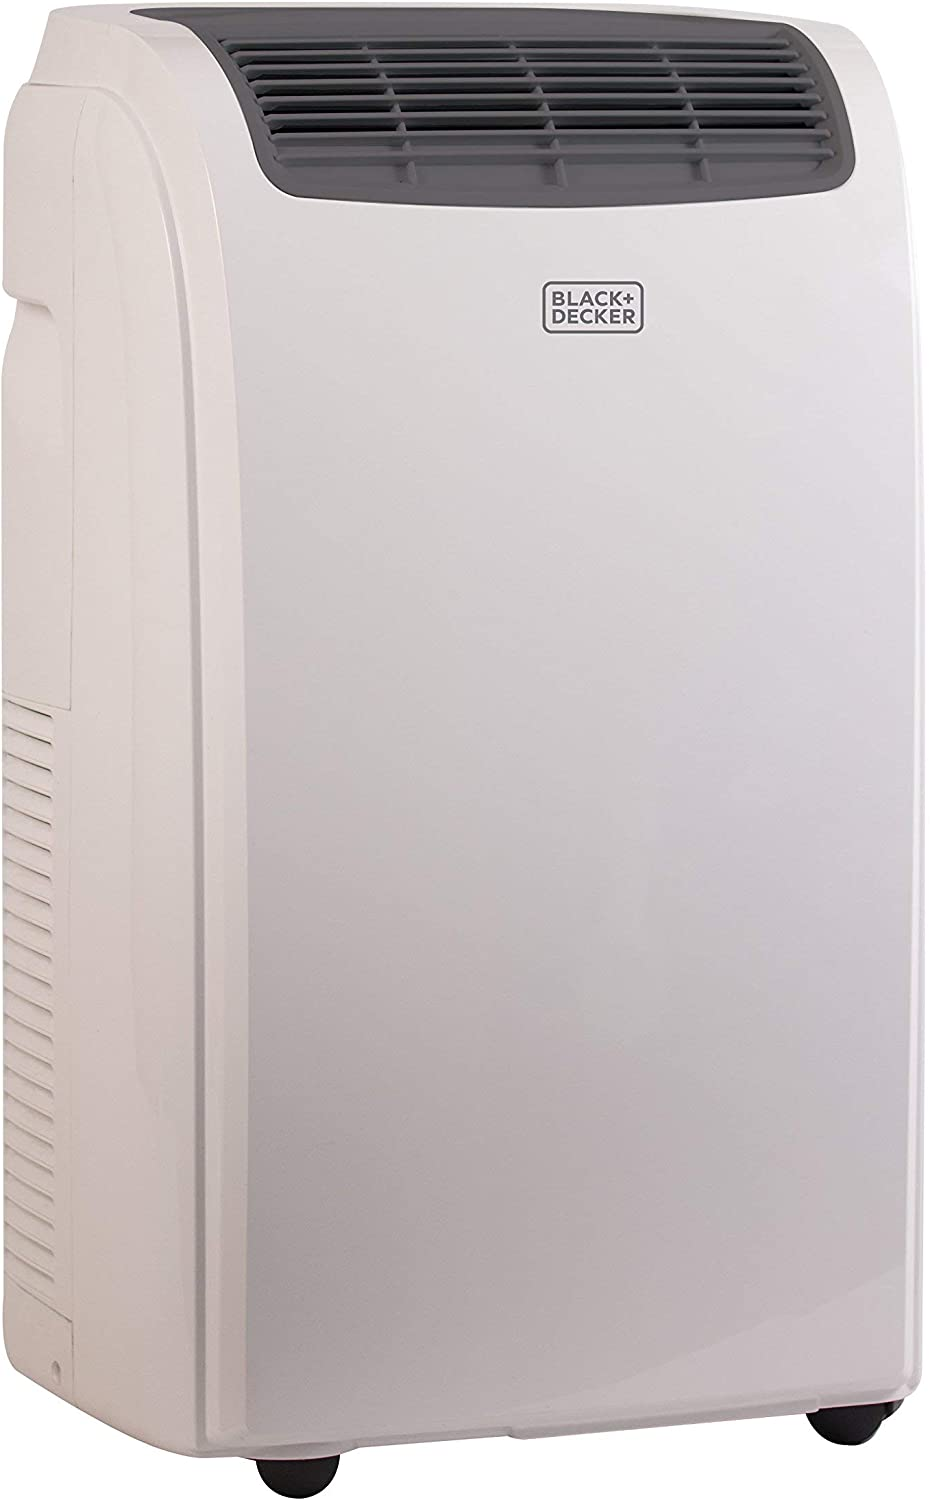 Black Decker 8000 BTU Portable Air Conditioner Unit, Remote, LED Display, Window Vent Kit, 4 Caster Wheels, White Renewed